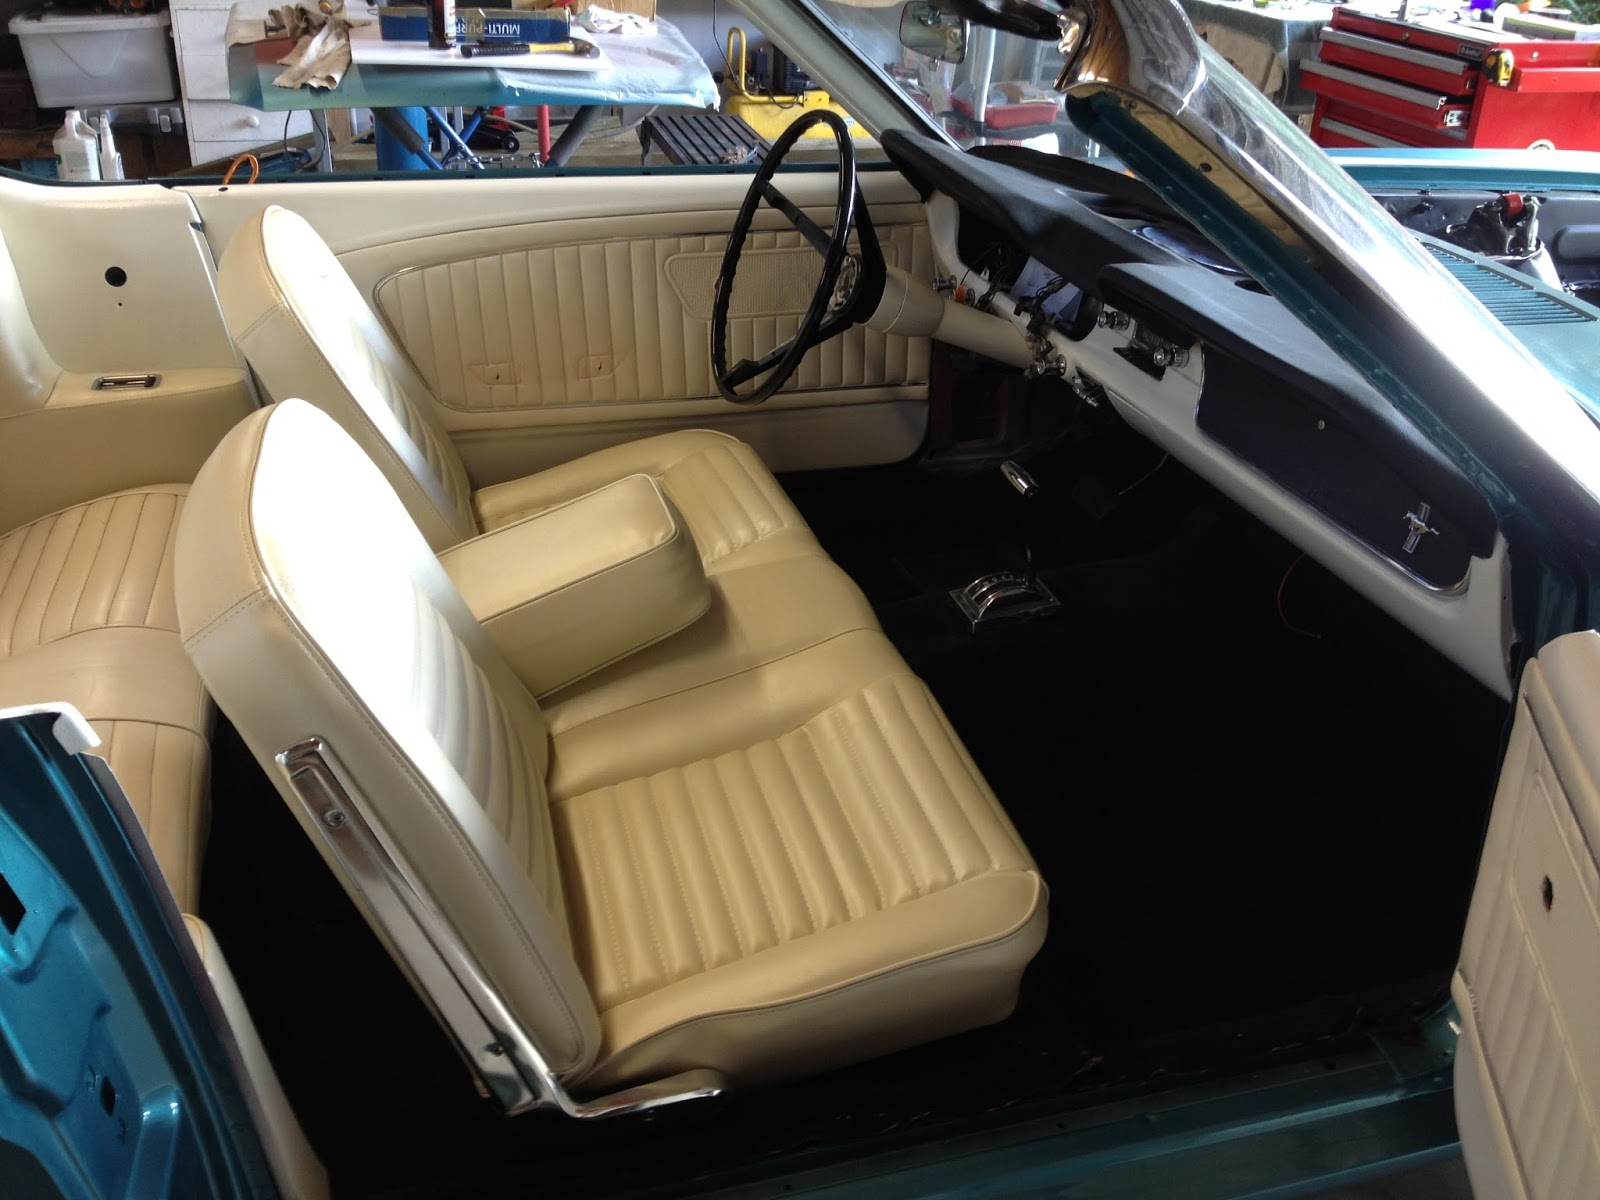 Superb img of  : 1965 Ford Mustang Rare Front Bench Seat and Centre Armrest with #31647B color and 1600x1200 pixels